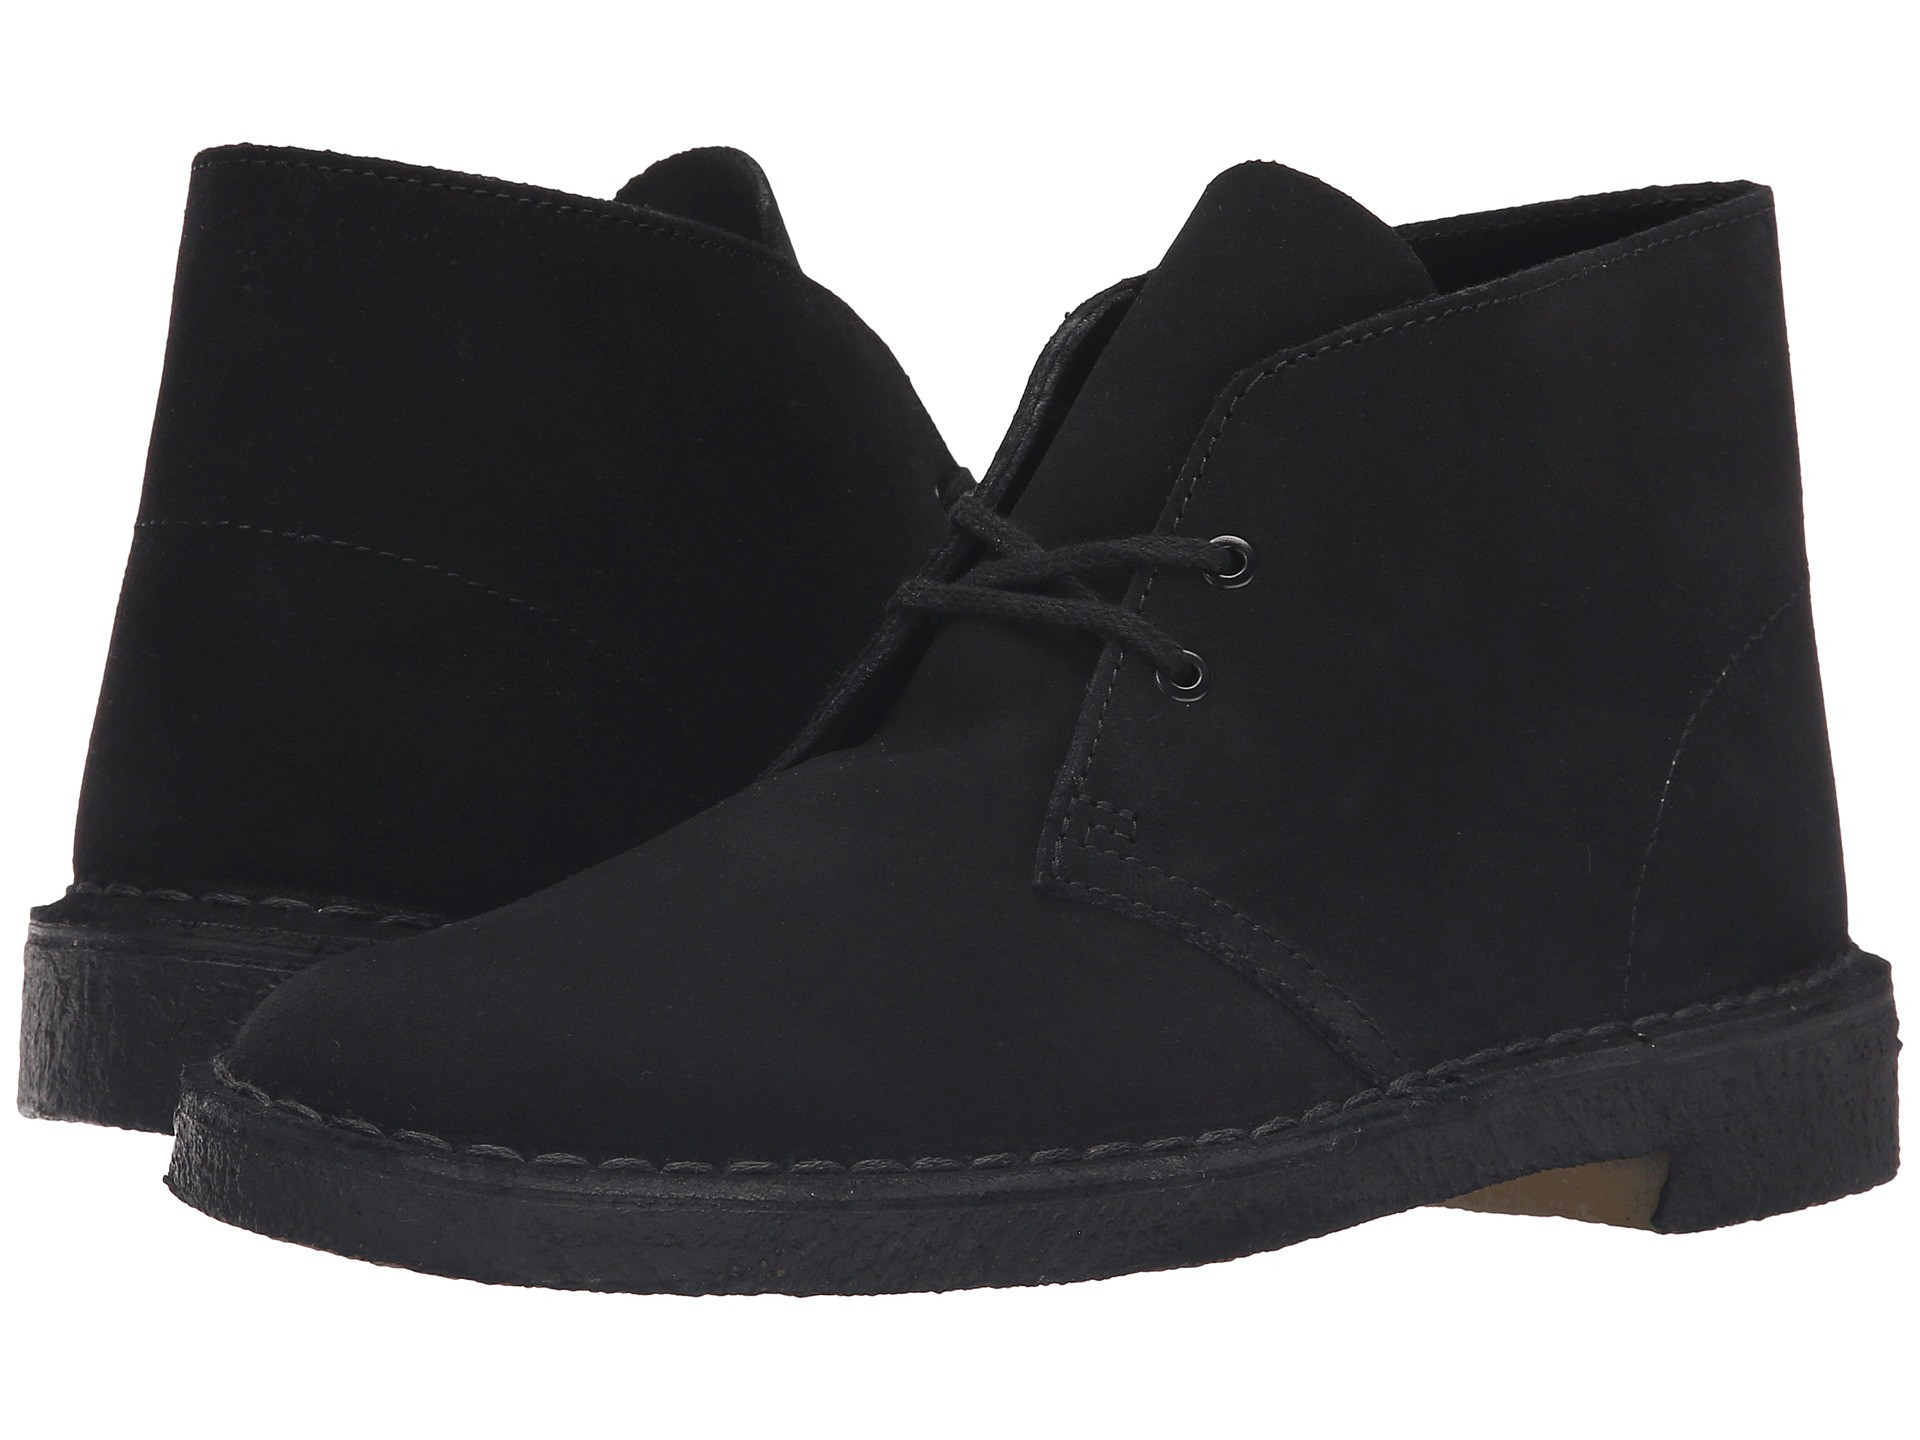 Clarks Desert Boot Zappos Com Free Shipping Both Ways